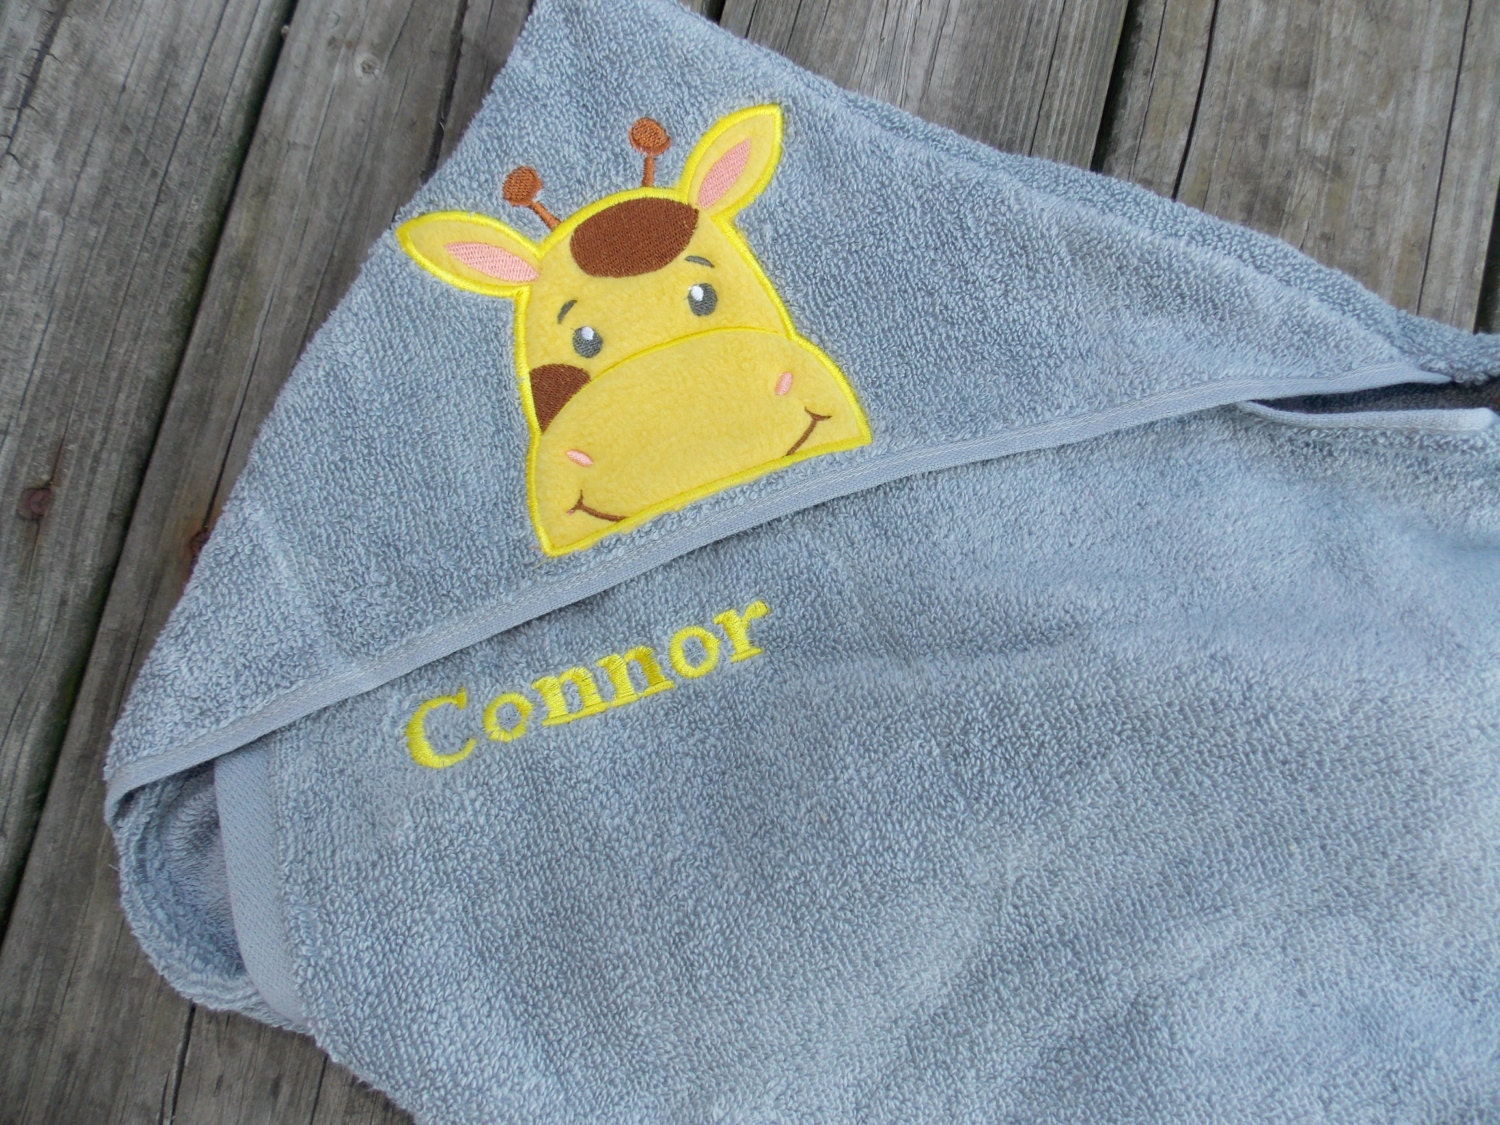 Infant Hooded Towel Personalized Hooded Towel Baby Shower Gift